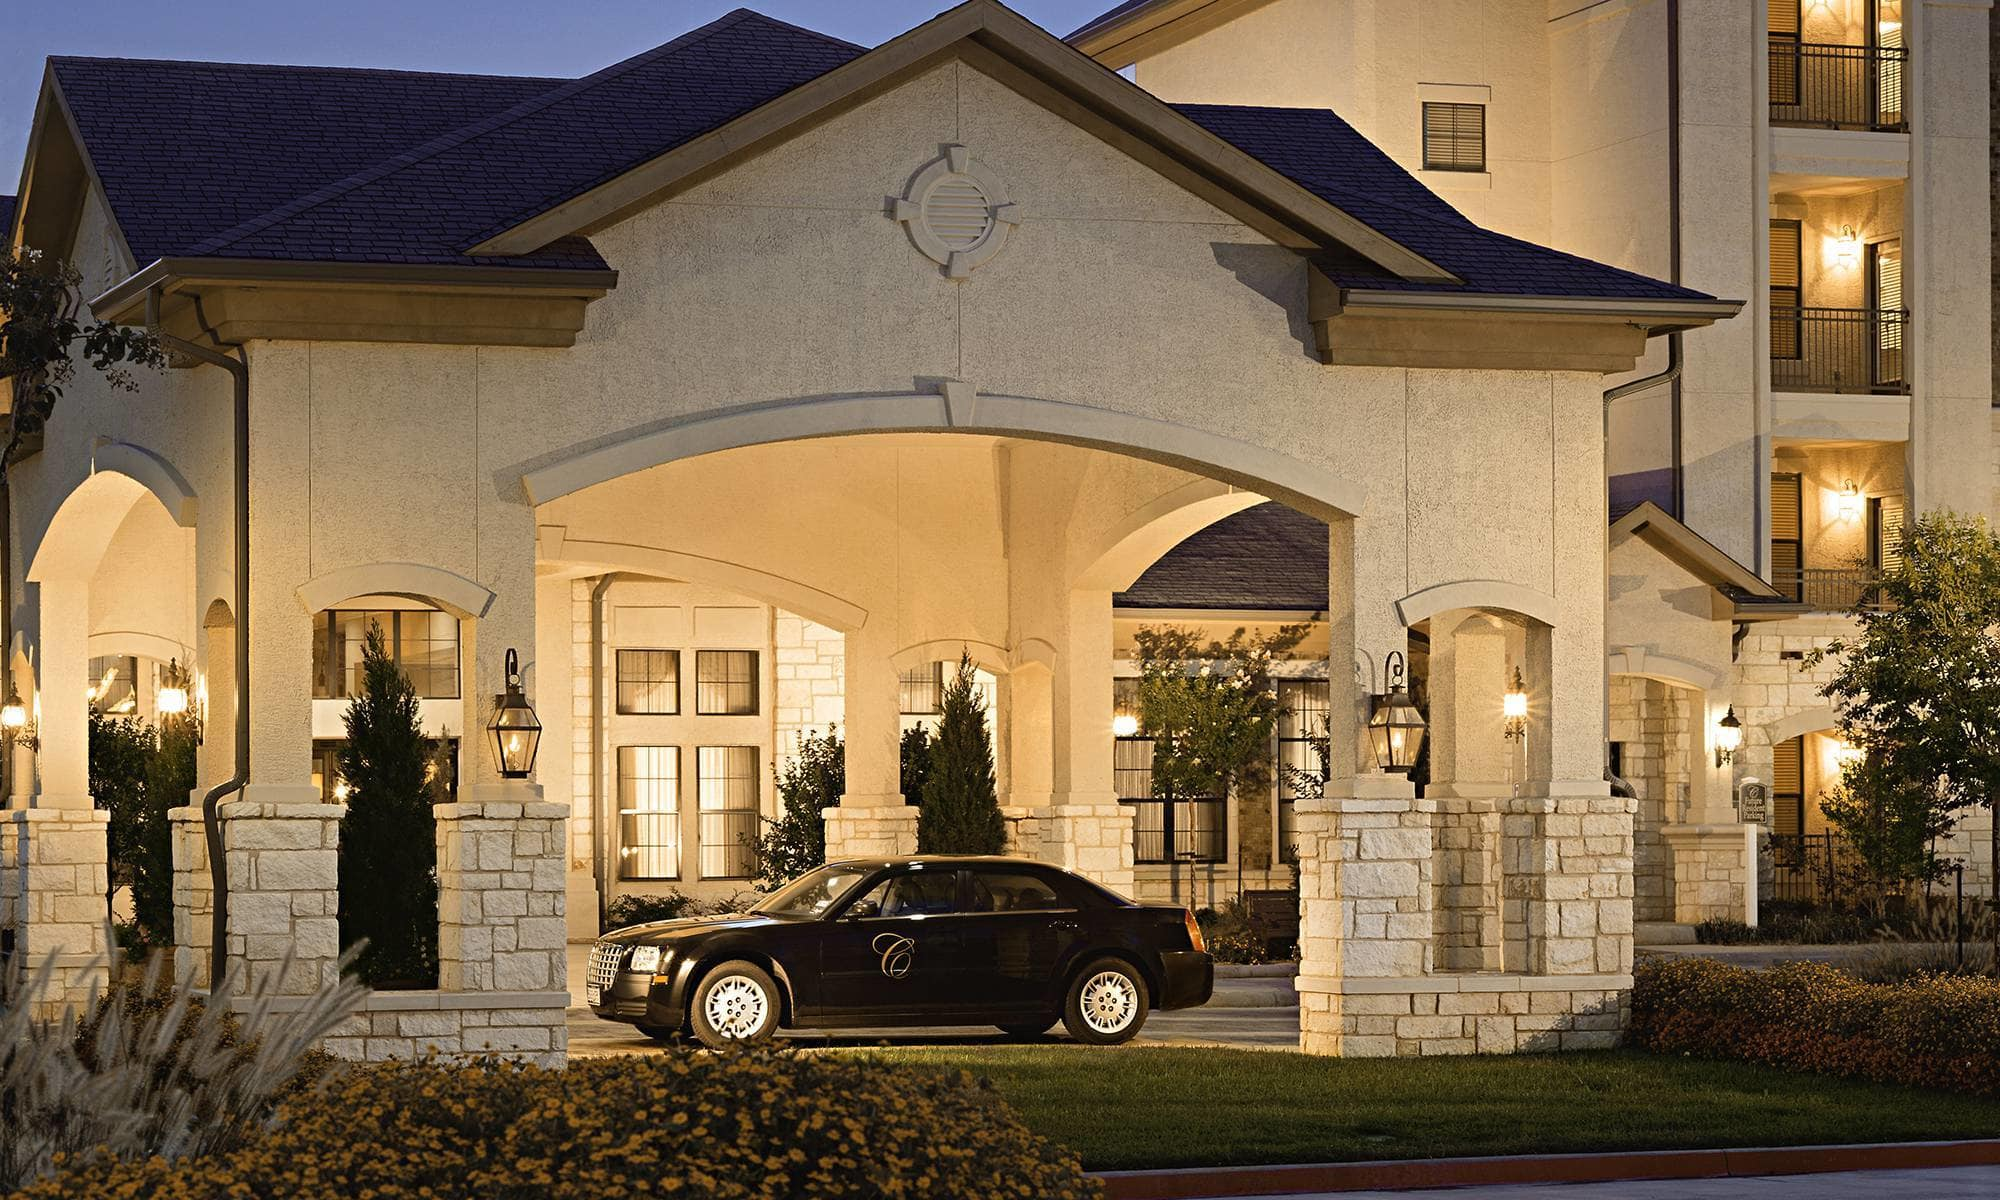 Awesome Exterior View Of The Entrance To Our Wonderful Senior Living Community In  Keller.